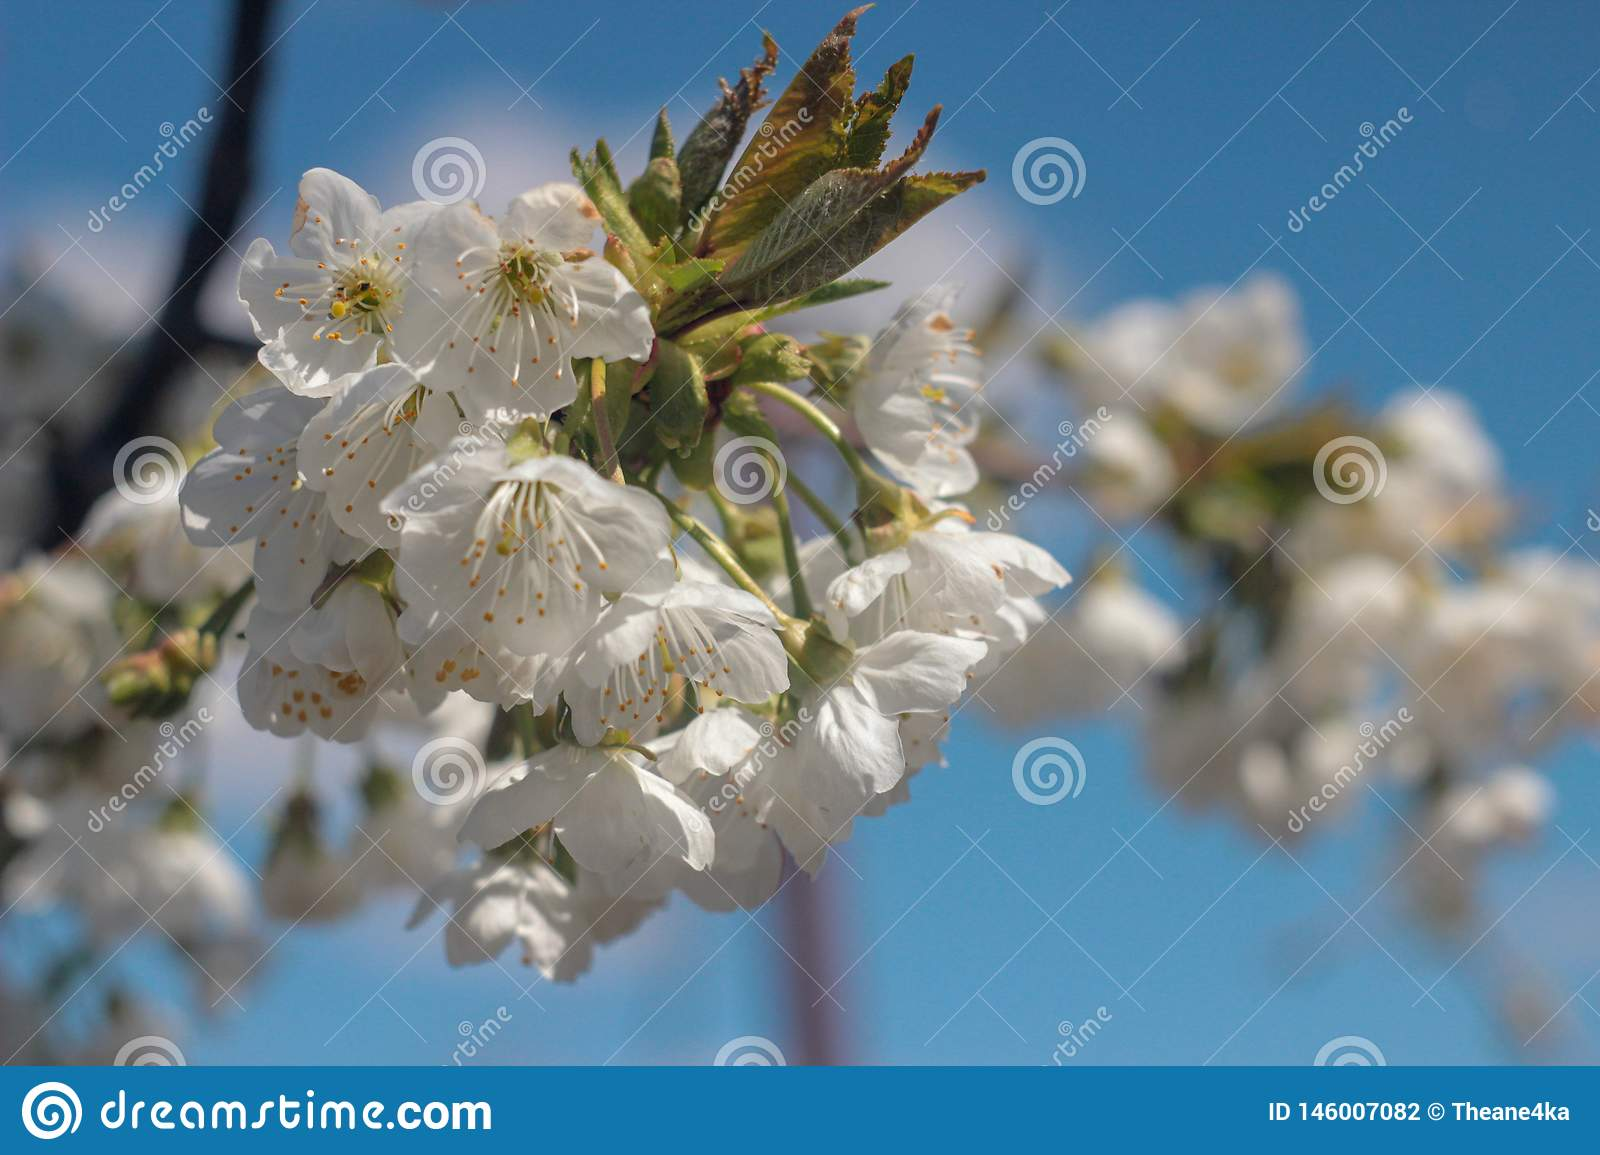 Photo of blooming cherry tree